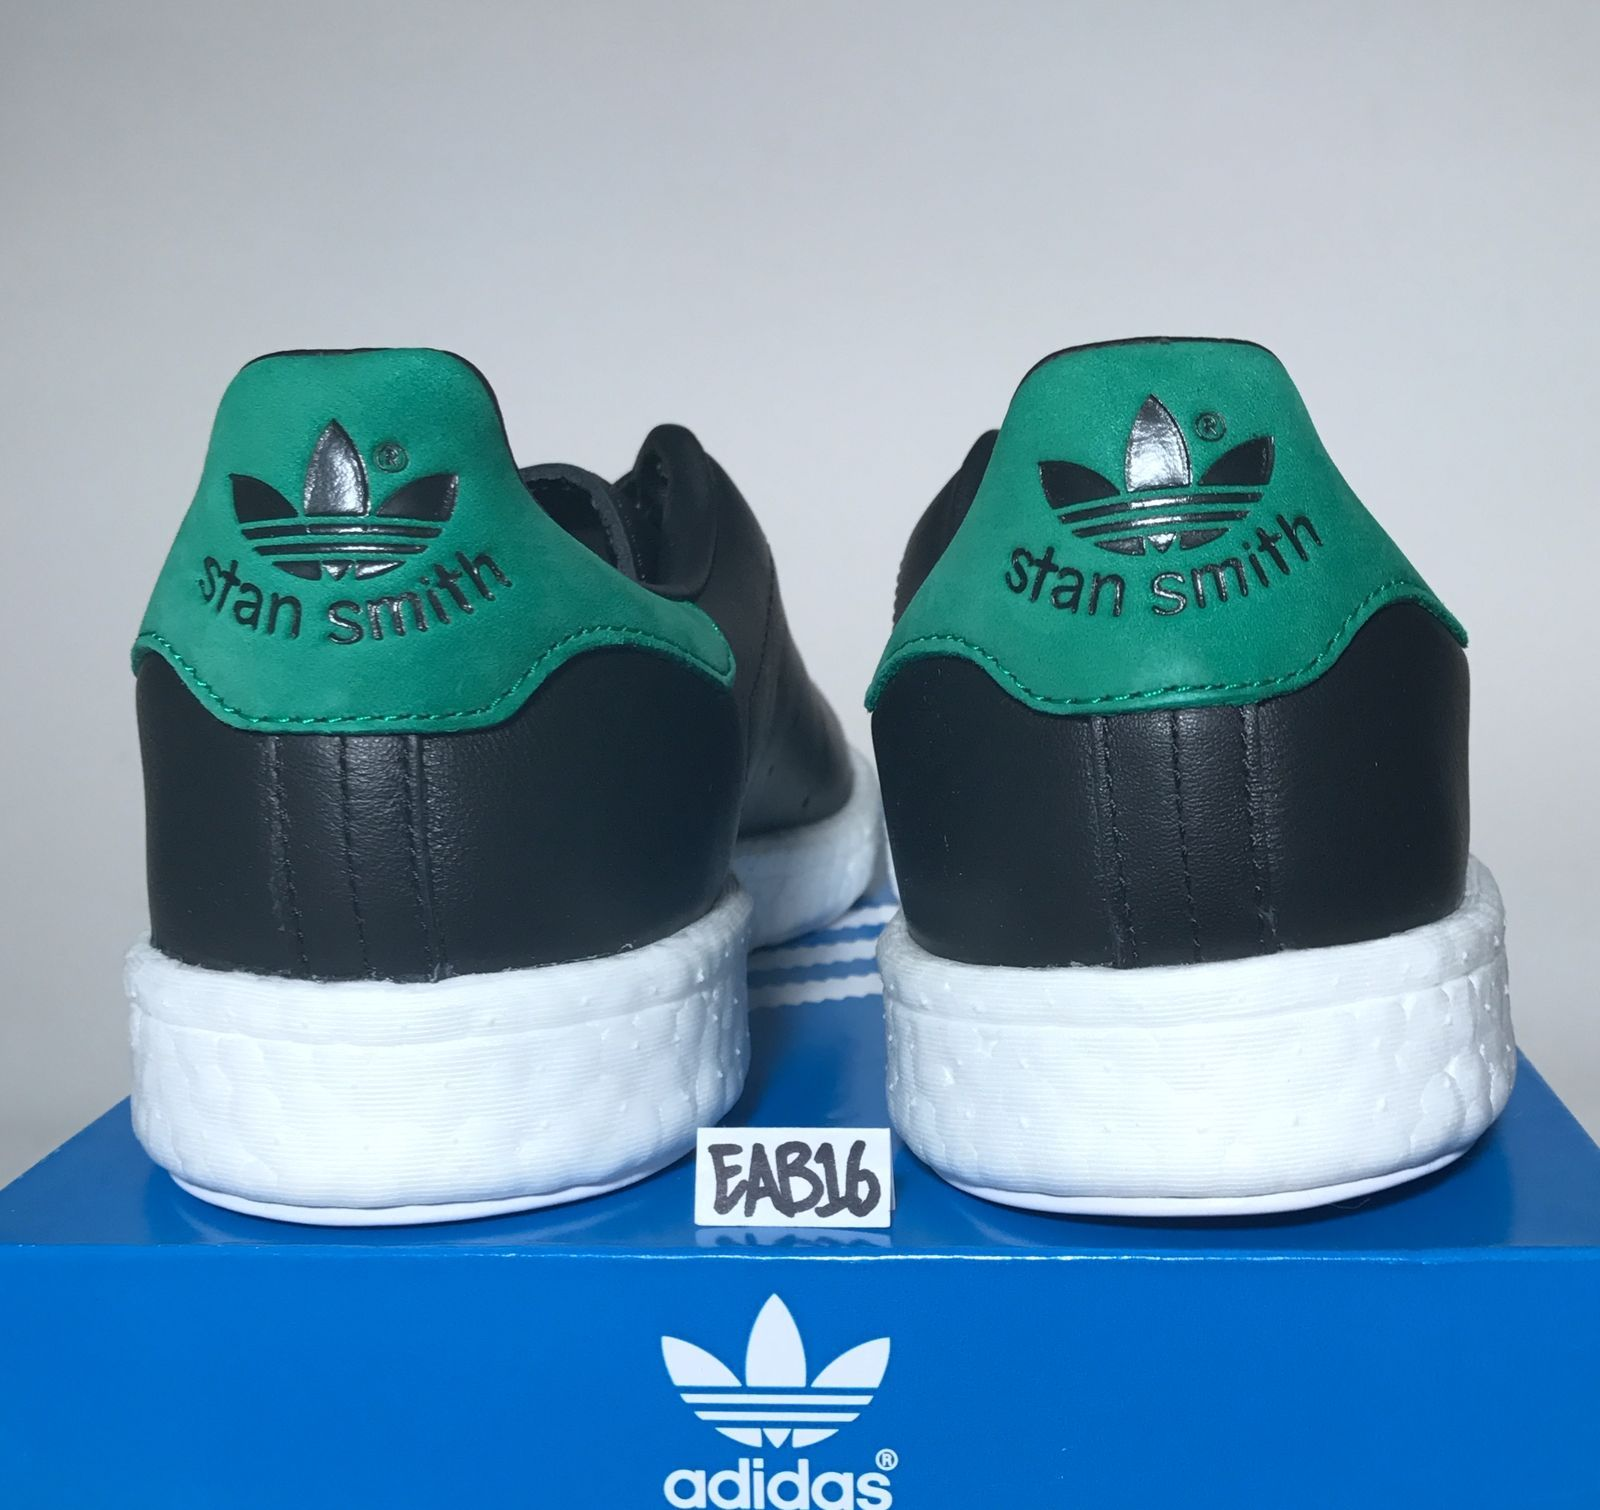 Details about Adidas Originals Stan Smith Boost Trainers Shoes BB0009 Black Green